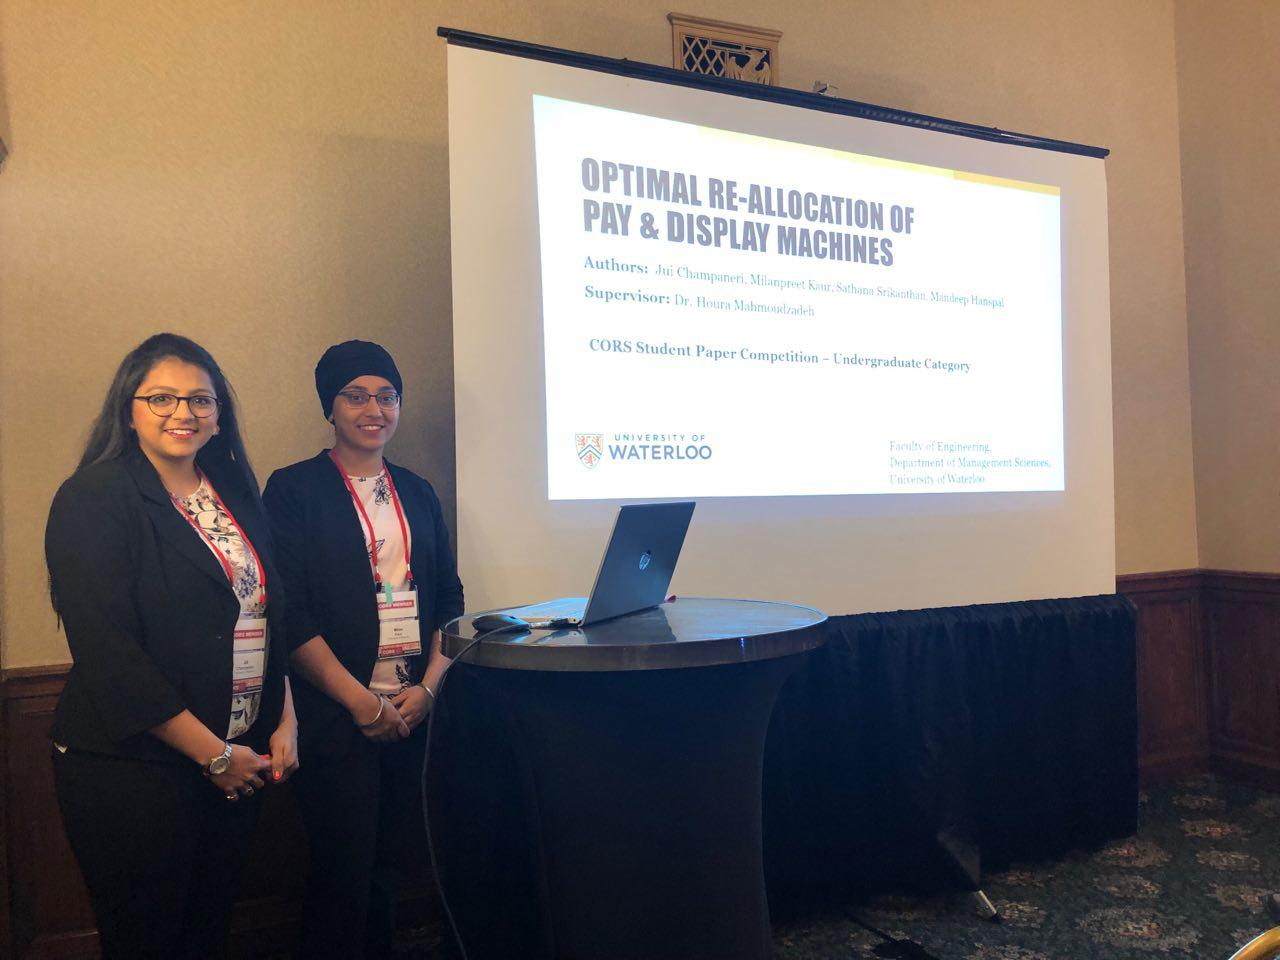 Management Engineering students to Milan Kaur and Jui Champaneri present at CORS conference